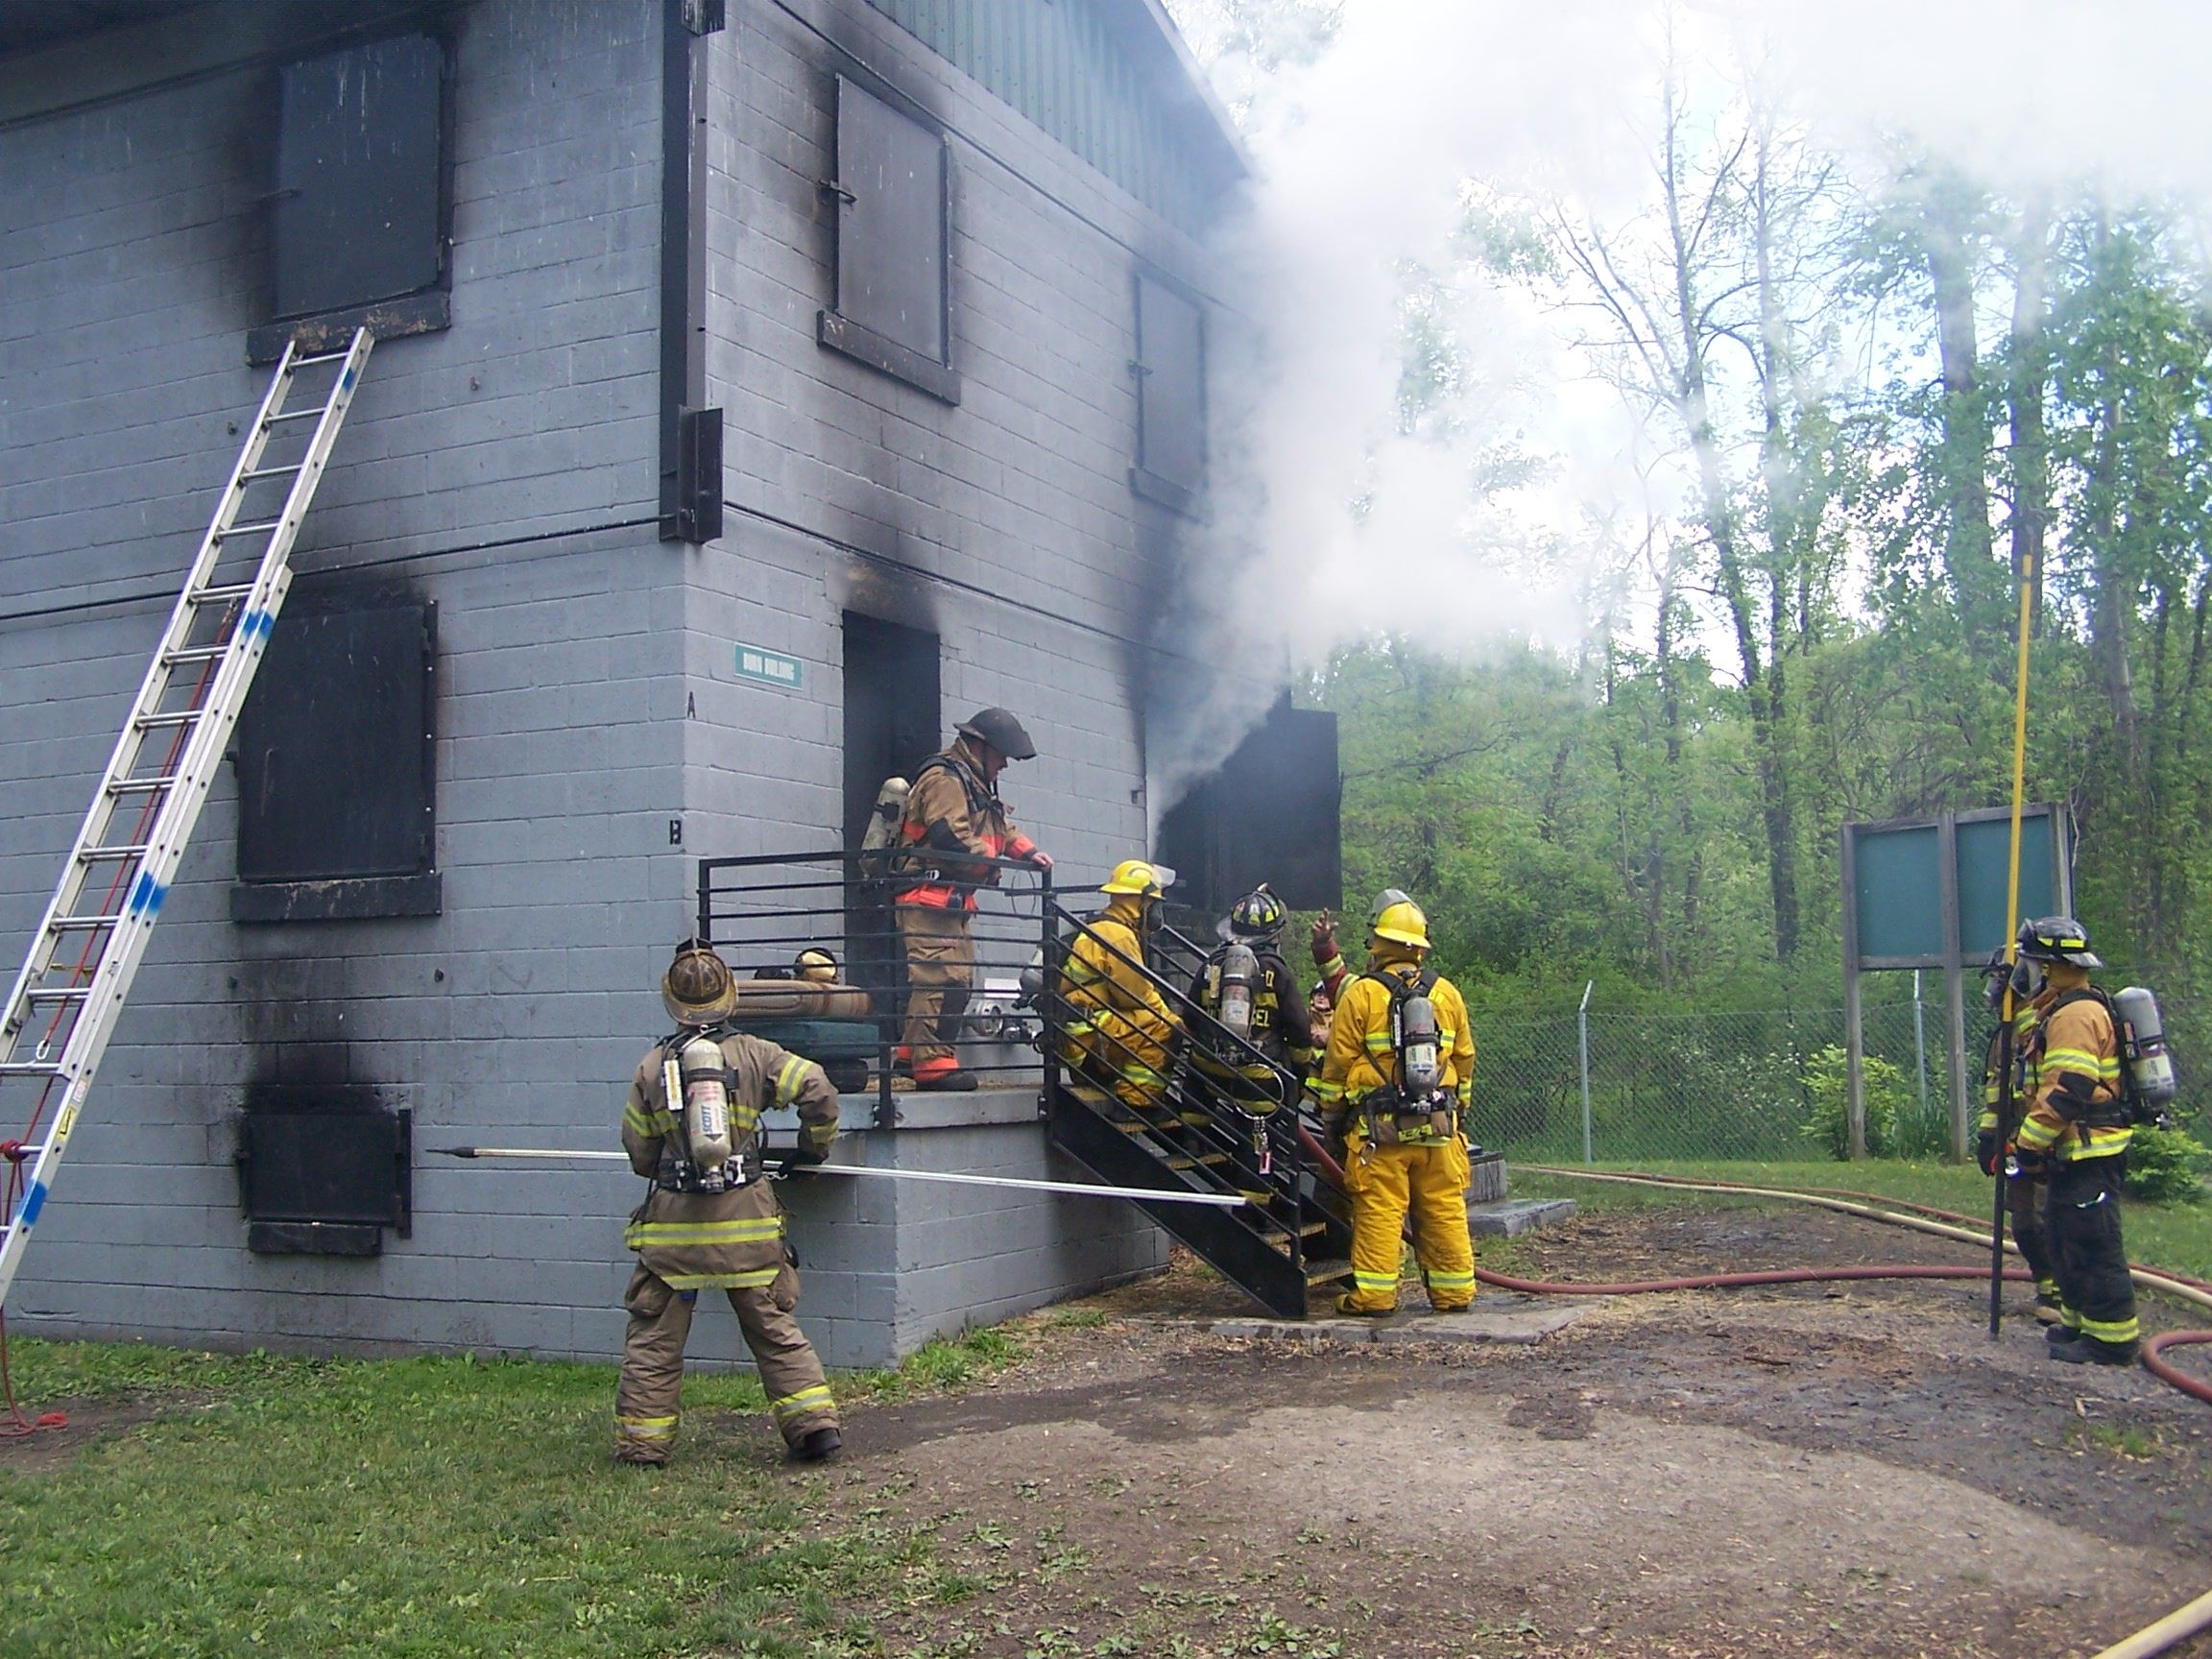 A group of firefighters in front of a smoky training facility. Two of the firefighters are holding poles.